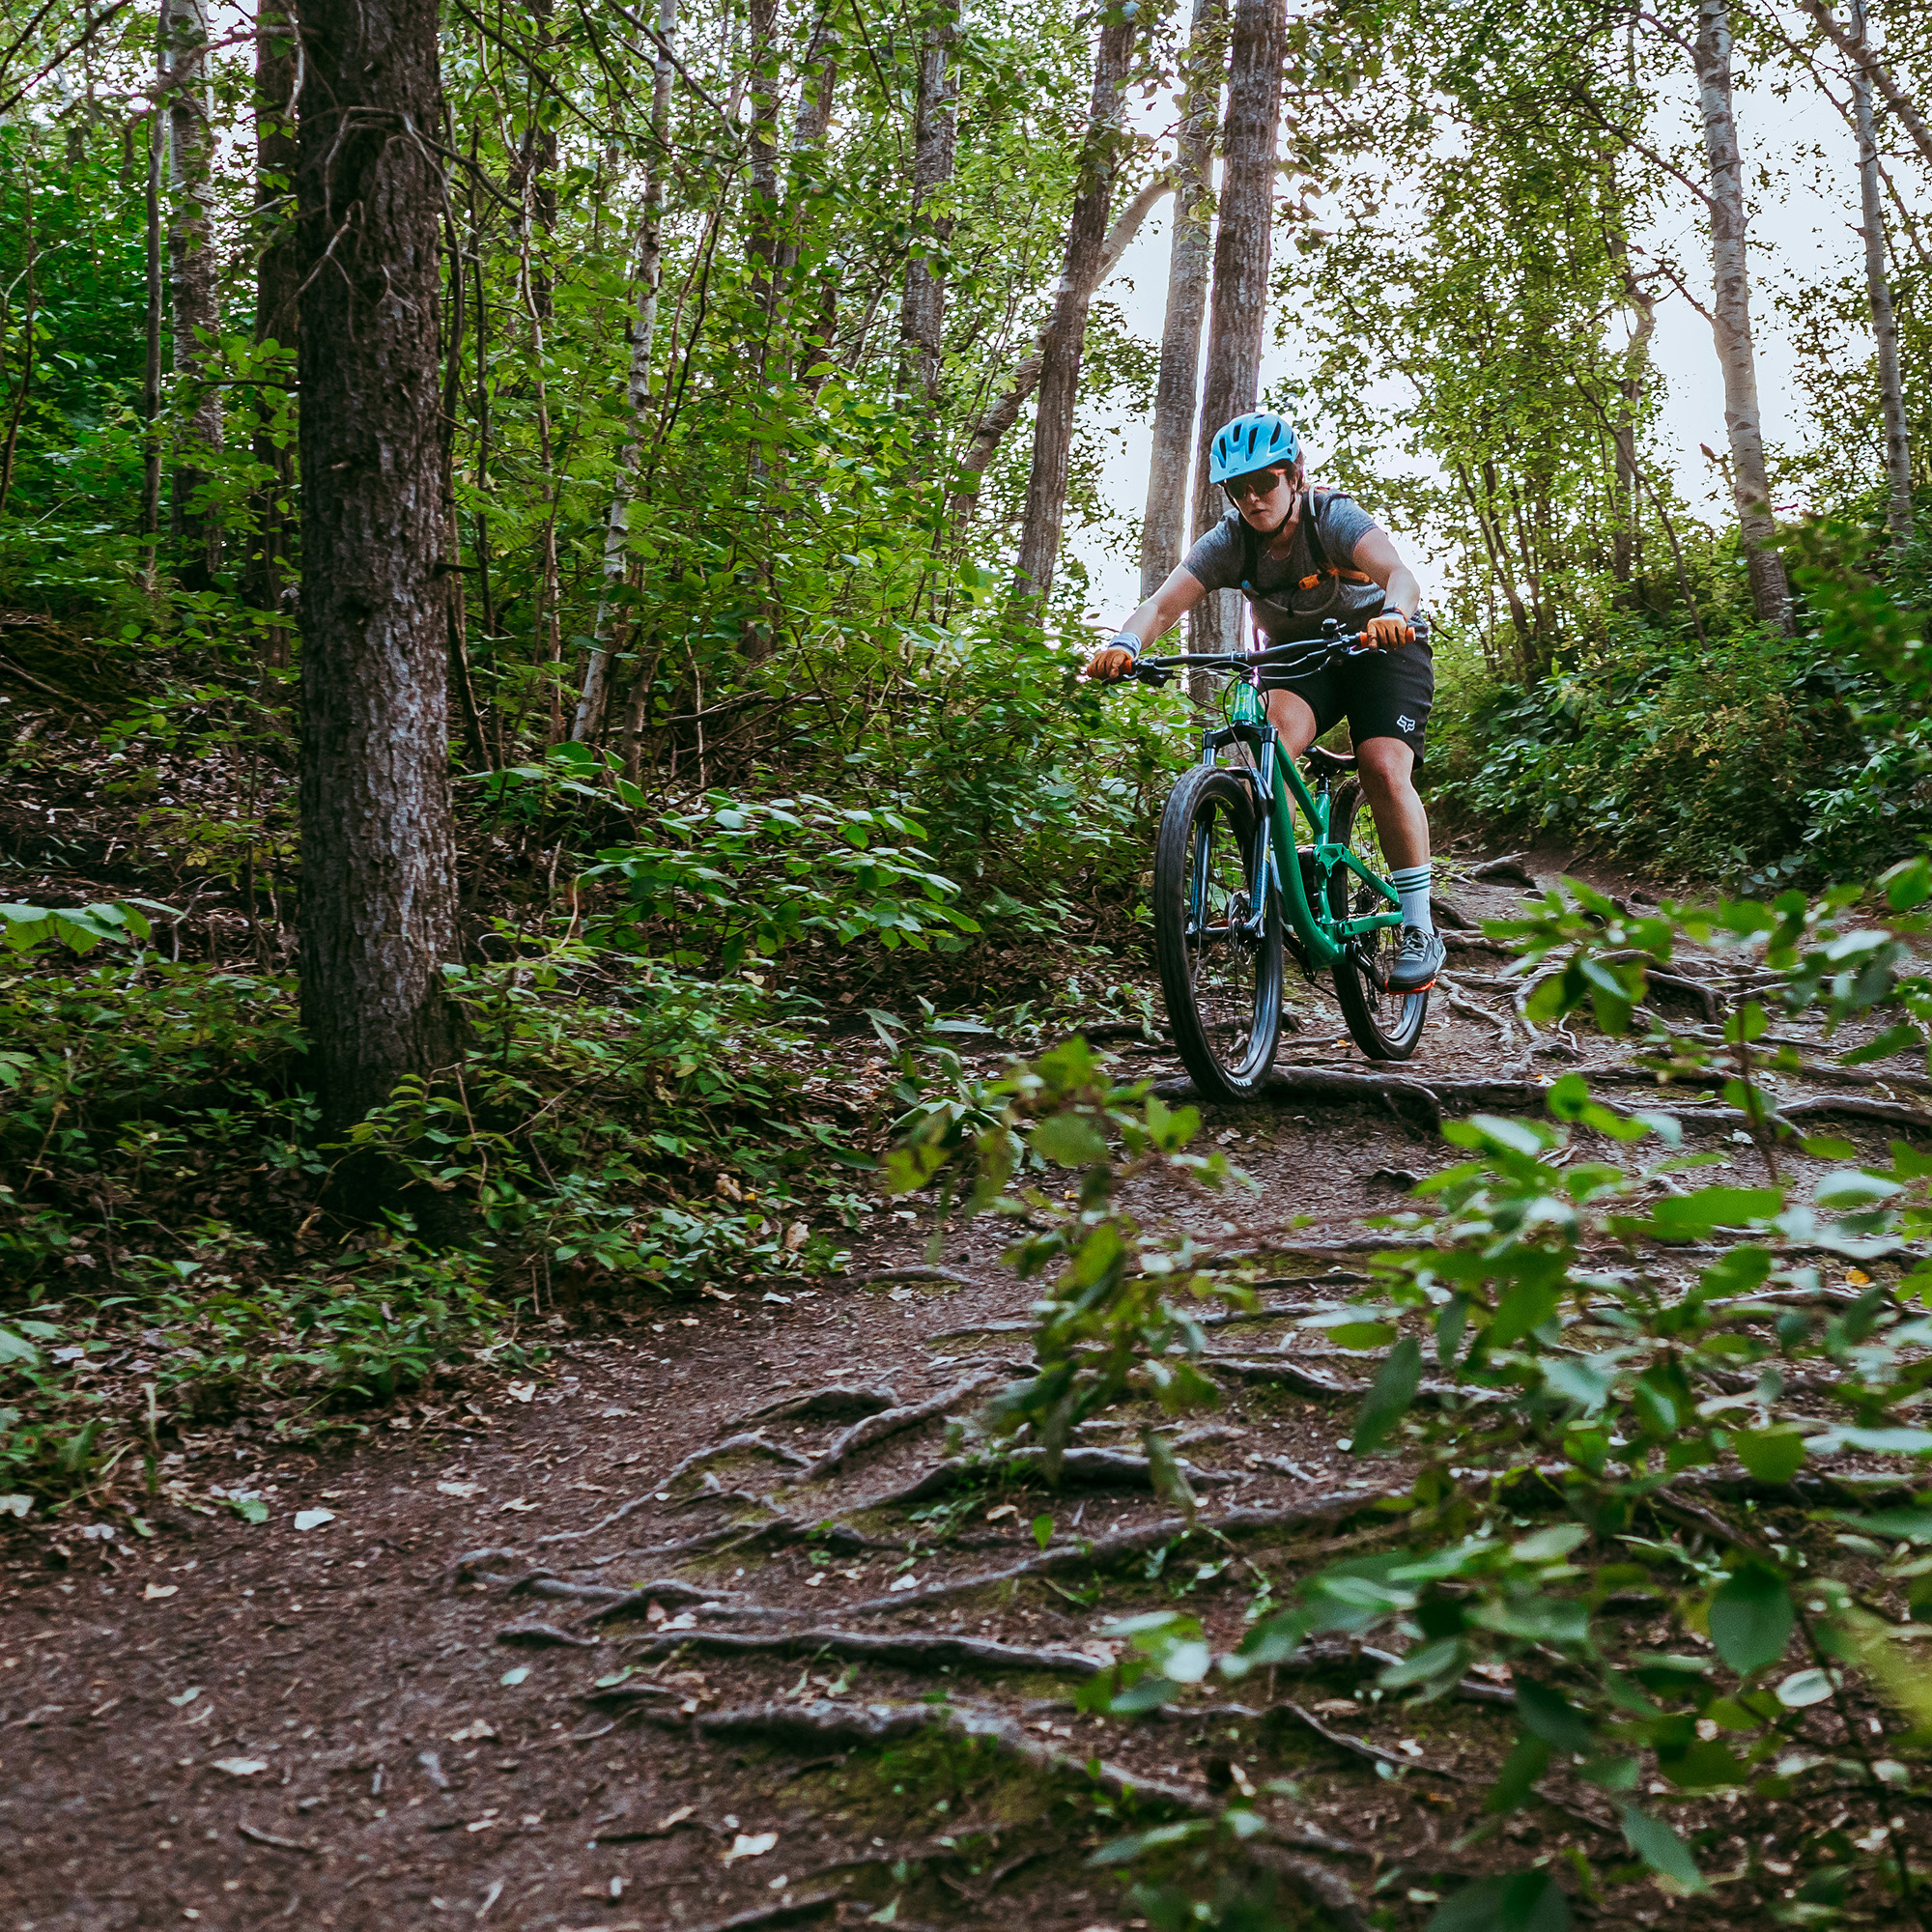 Emma rides her bike down a steep hill covered in tree roots